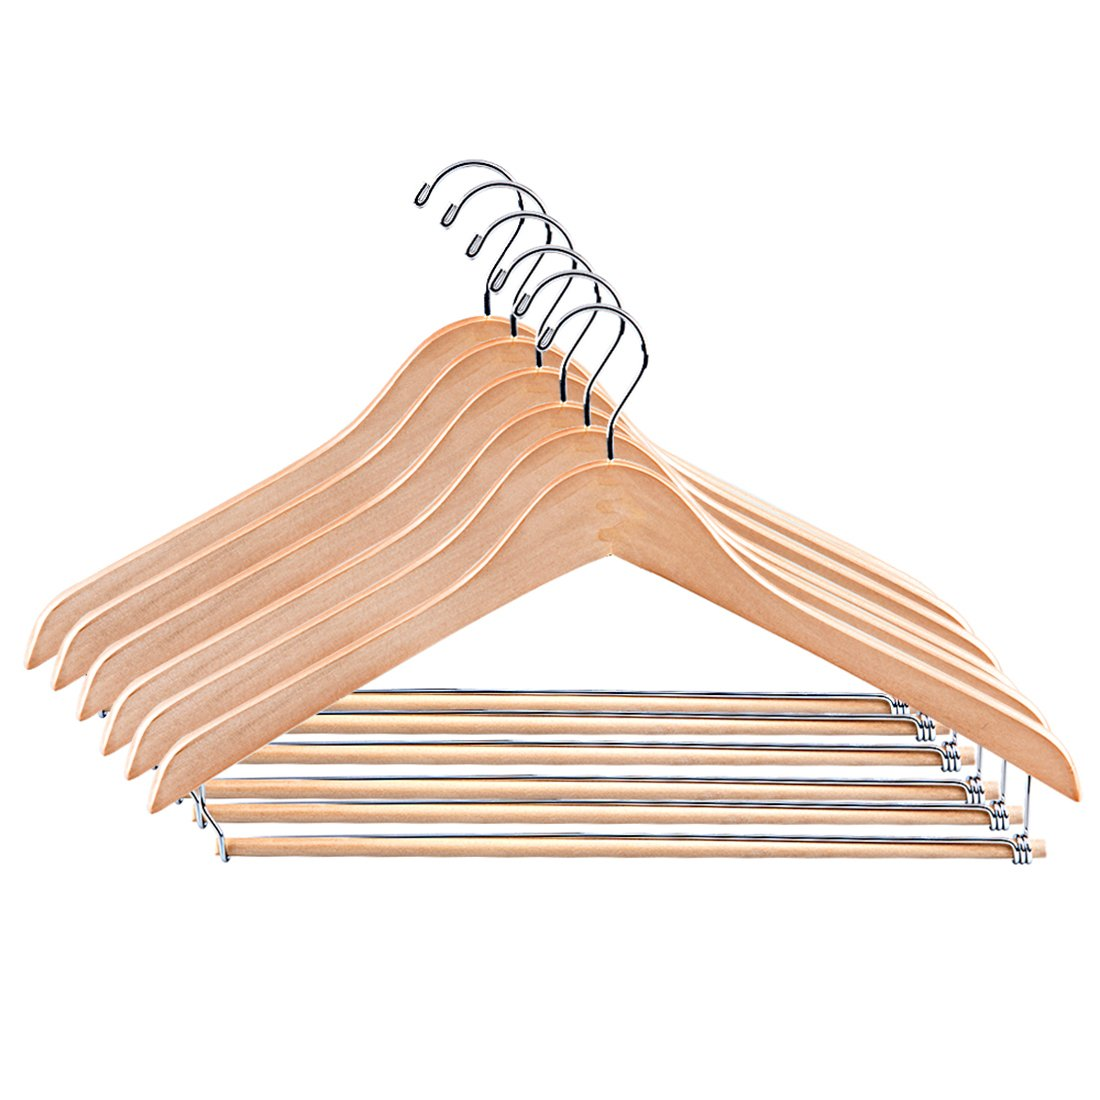 Tosnail Natural Wooden Suit Hangers, Wood Coat Hangers Pant Hangers with Locking Bar - 6 Pack